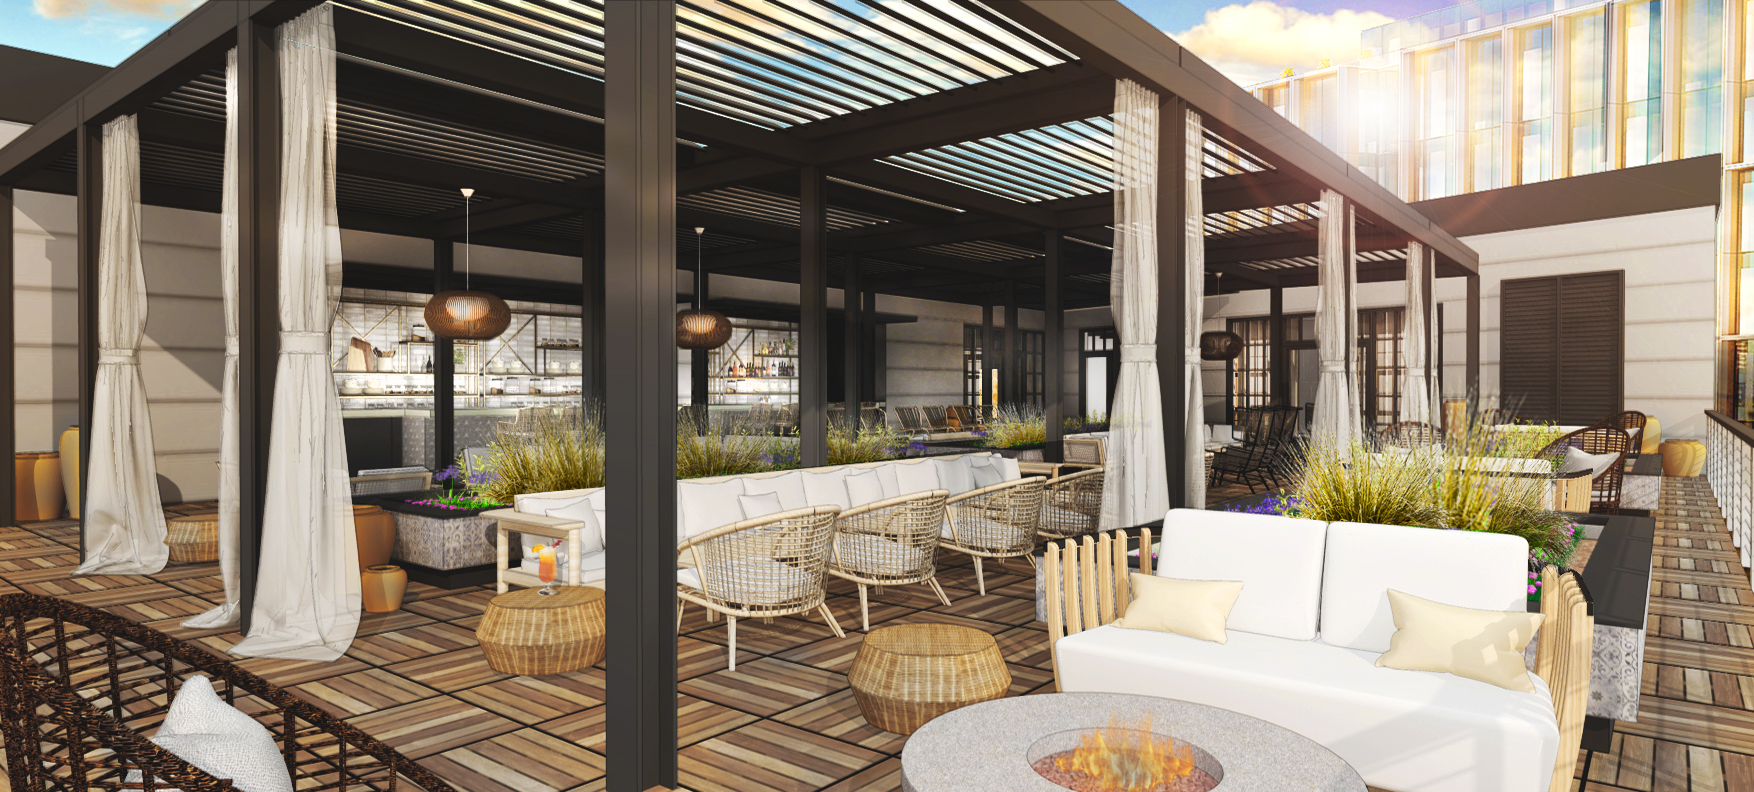 Terrazza - A rooftop oasis and events space for every season